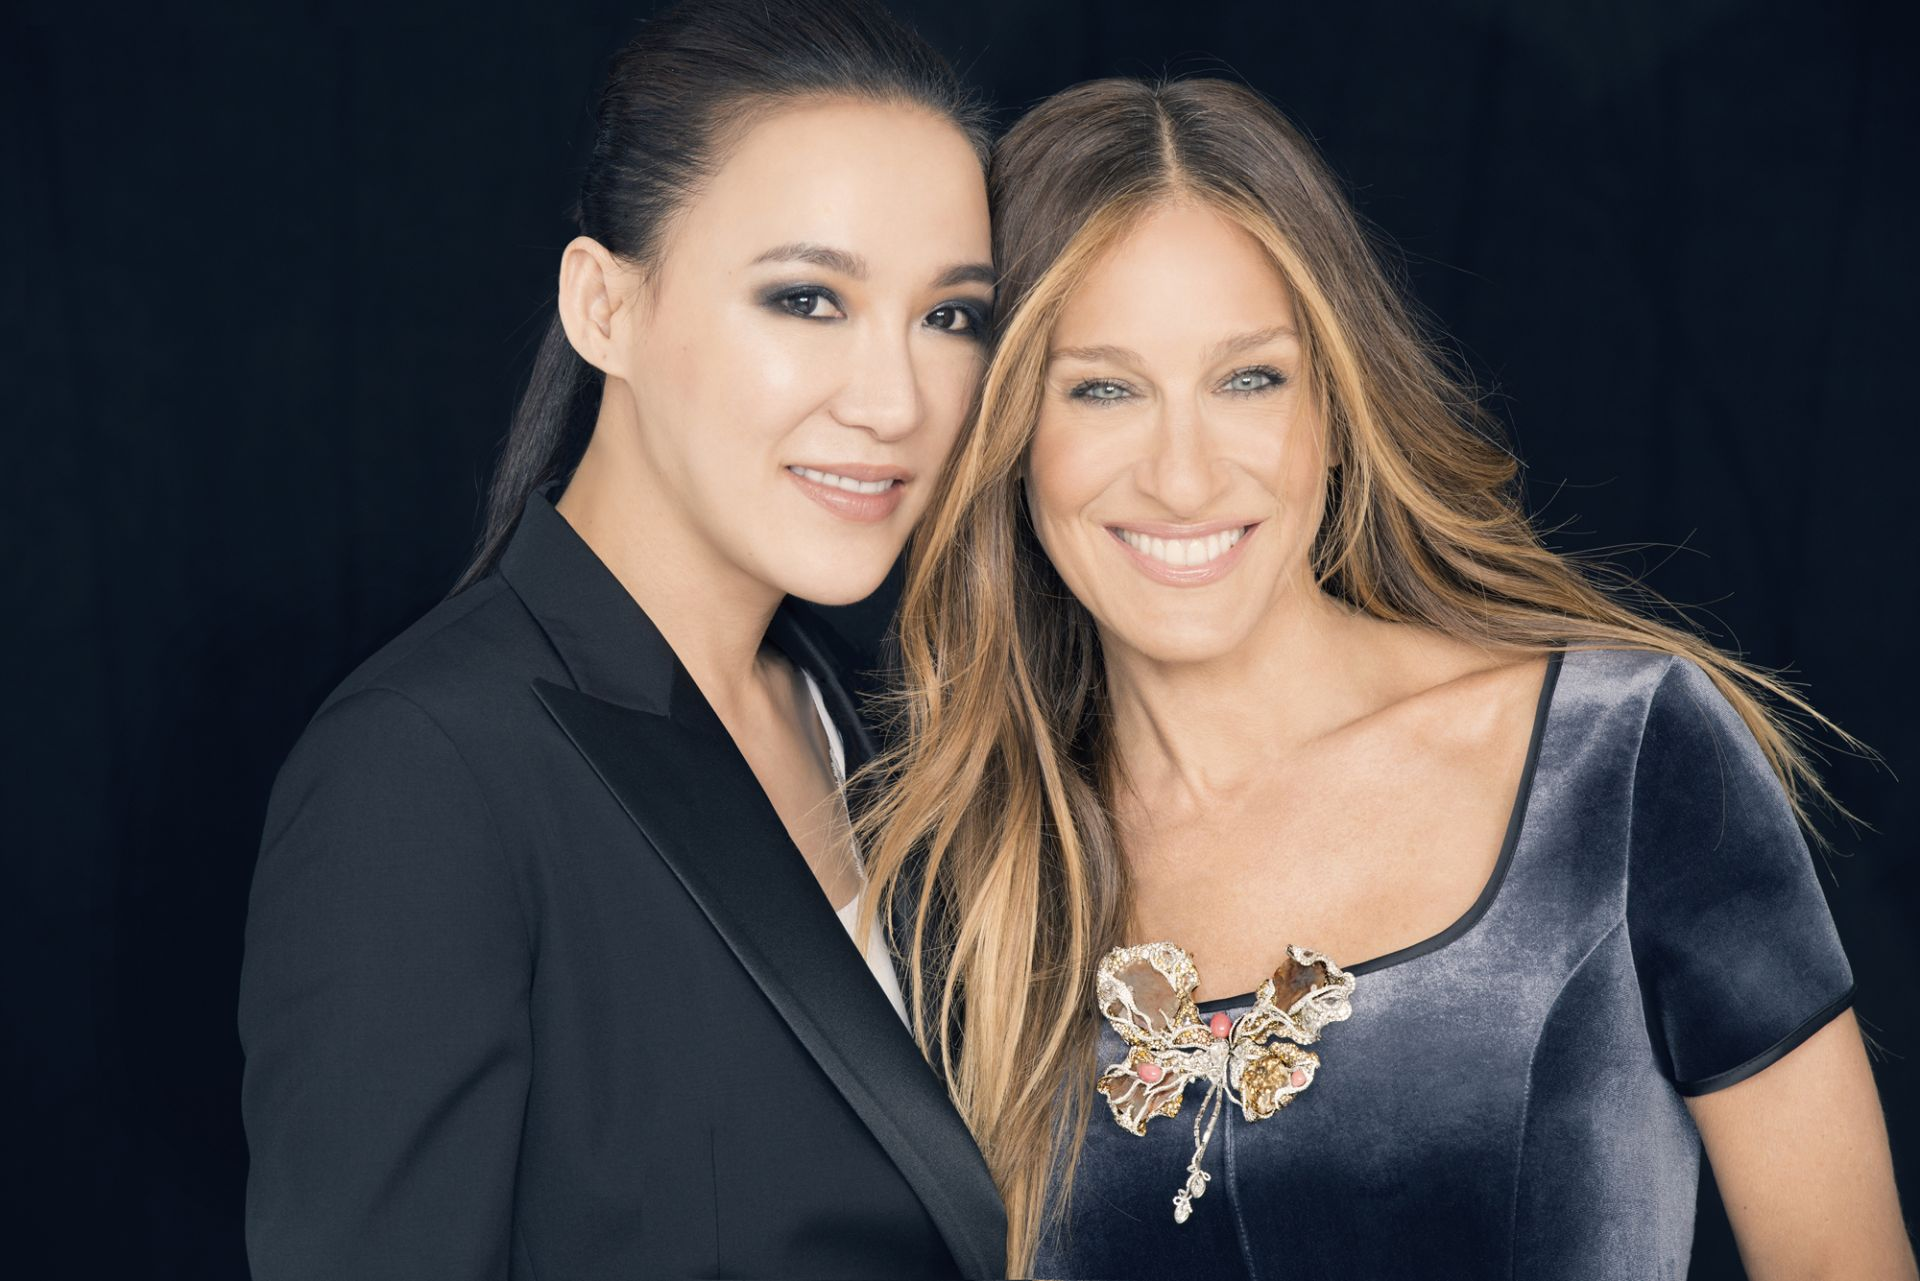 Cindy Chao and Sarah Jessica Parker.